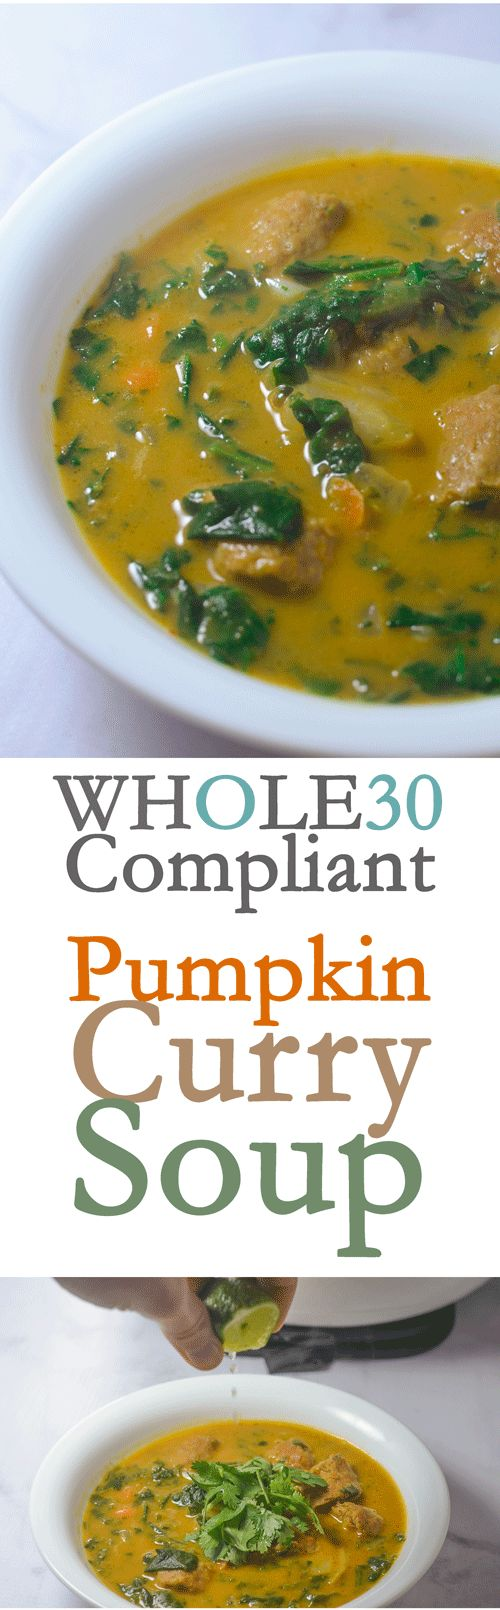 Super tasty Whole30 compliant pumpkin curry soup. Incredibly easy to make, takes under 30 minutes to make!